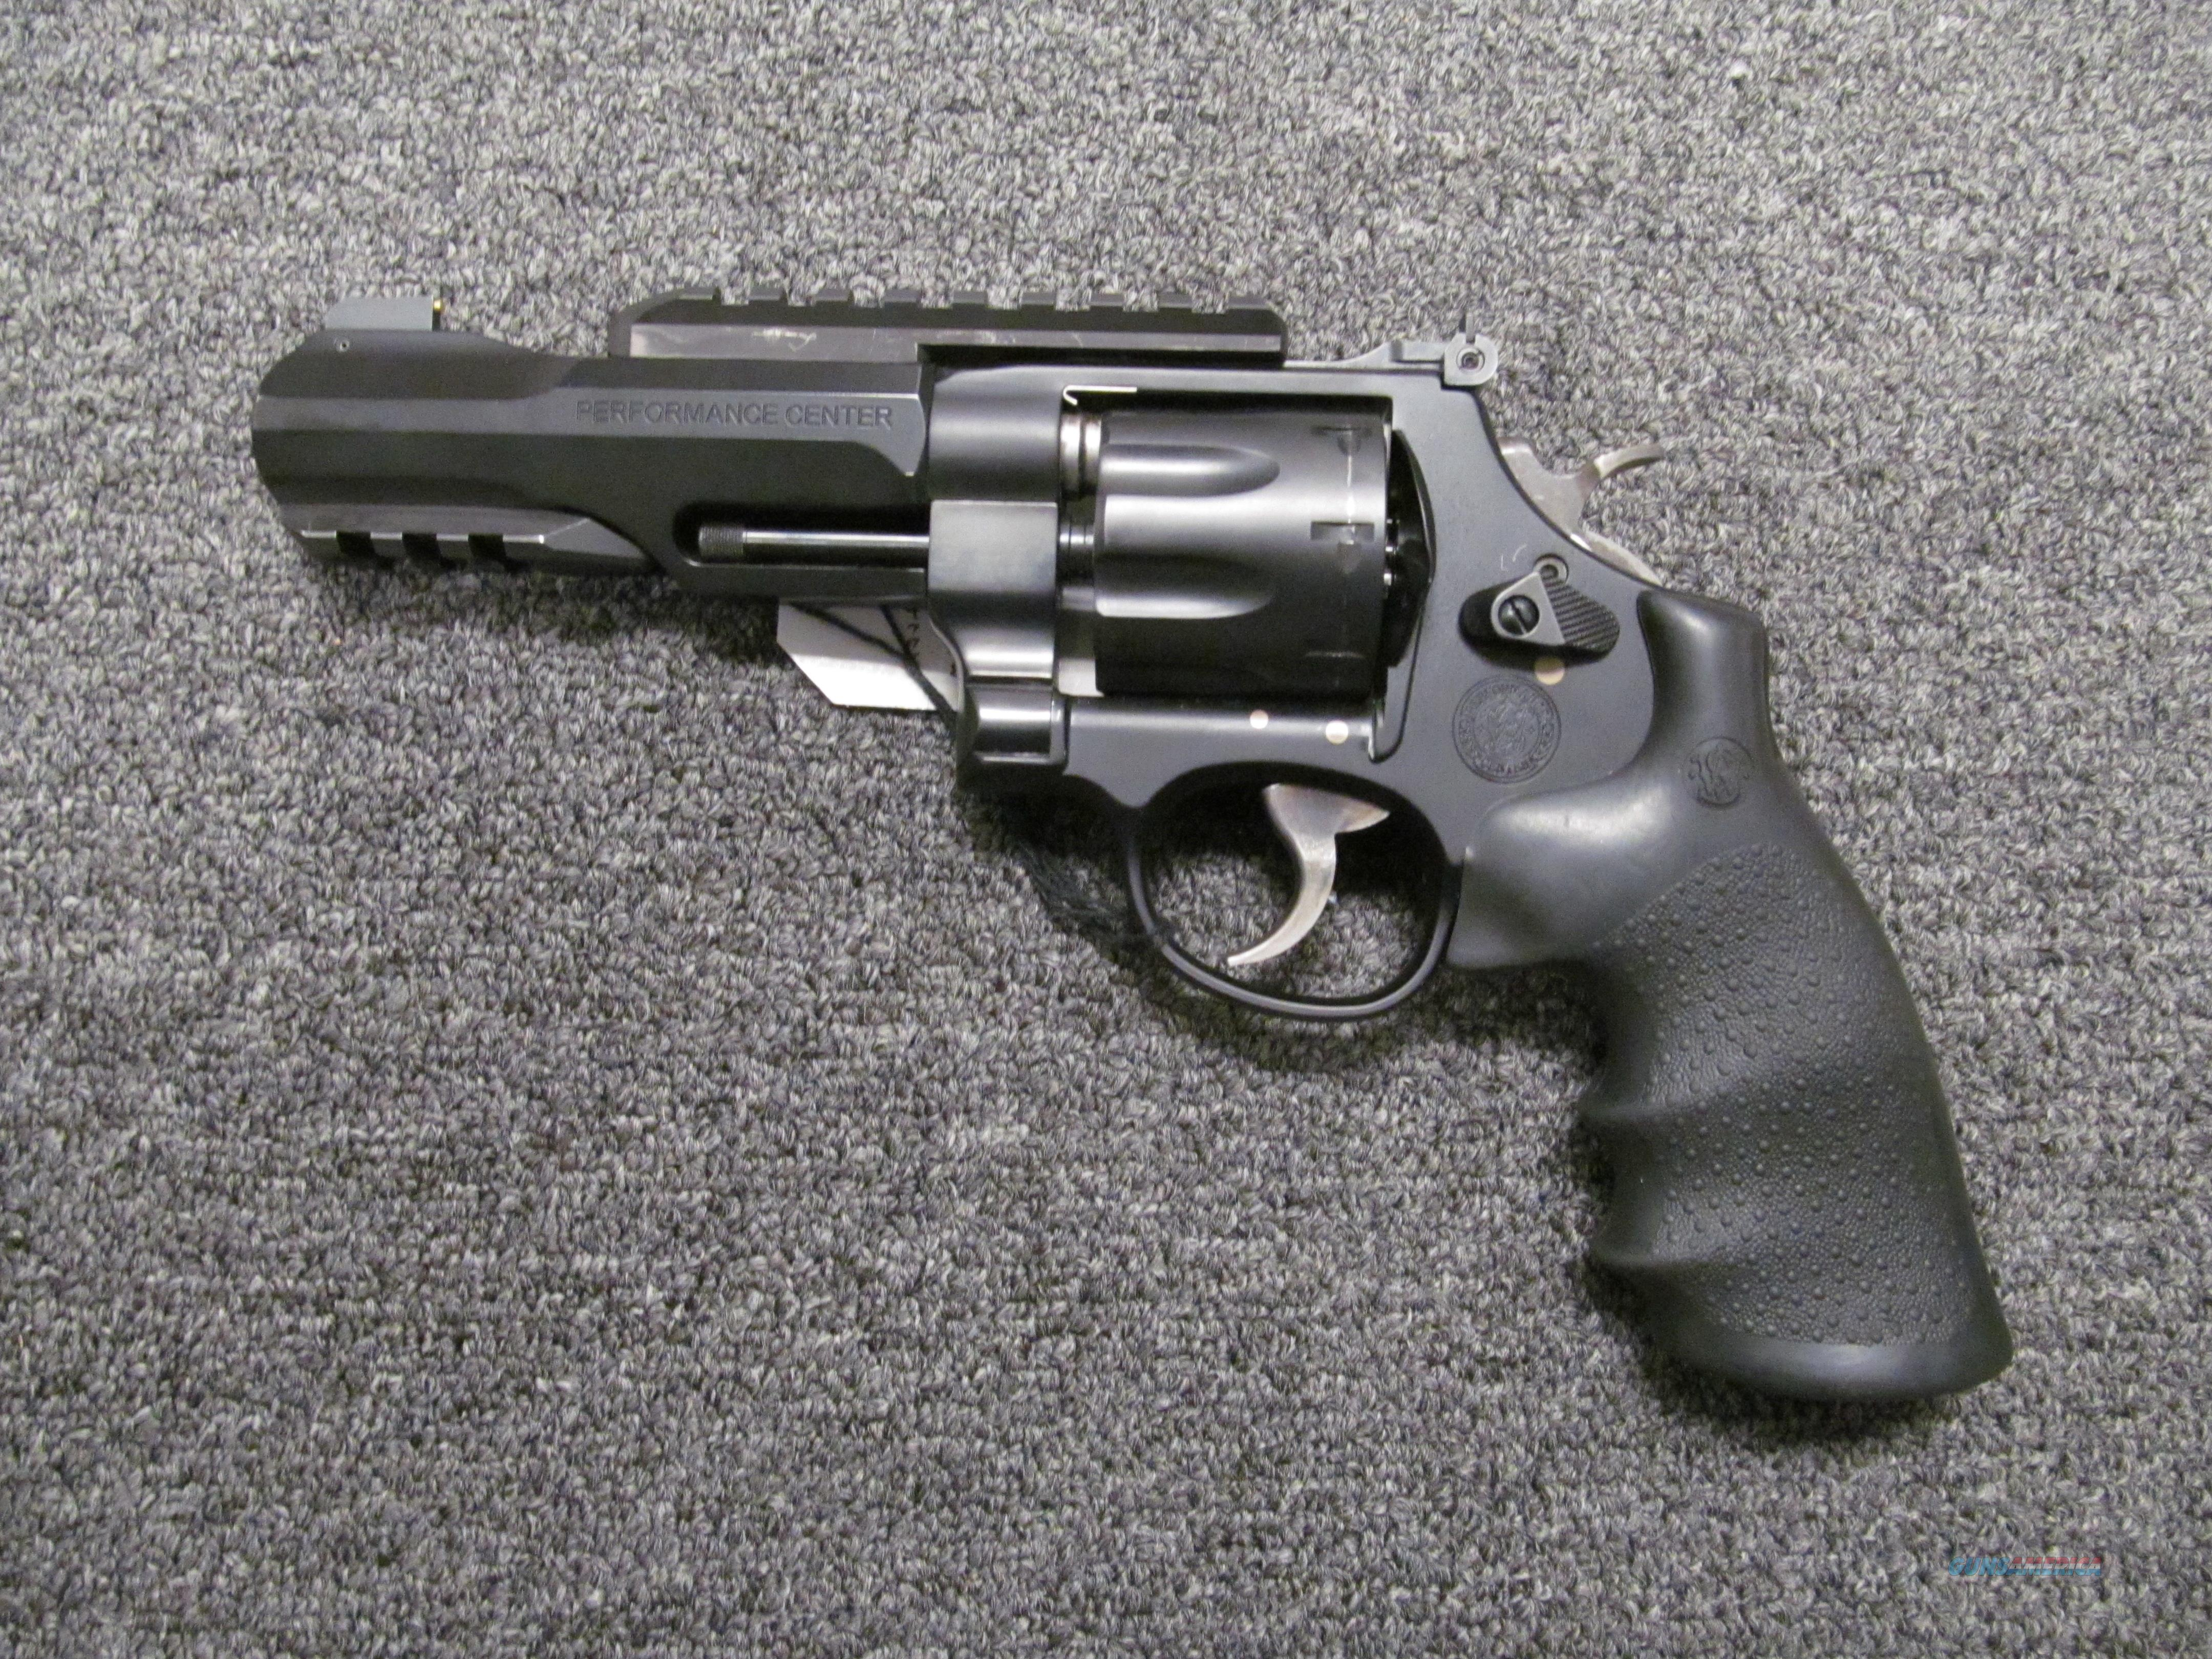 Smith & Wesson 327 TRR8 (170269) Performance Center  Guns > Pistols > Smith & Wesson Revolvers > Performance Center